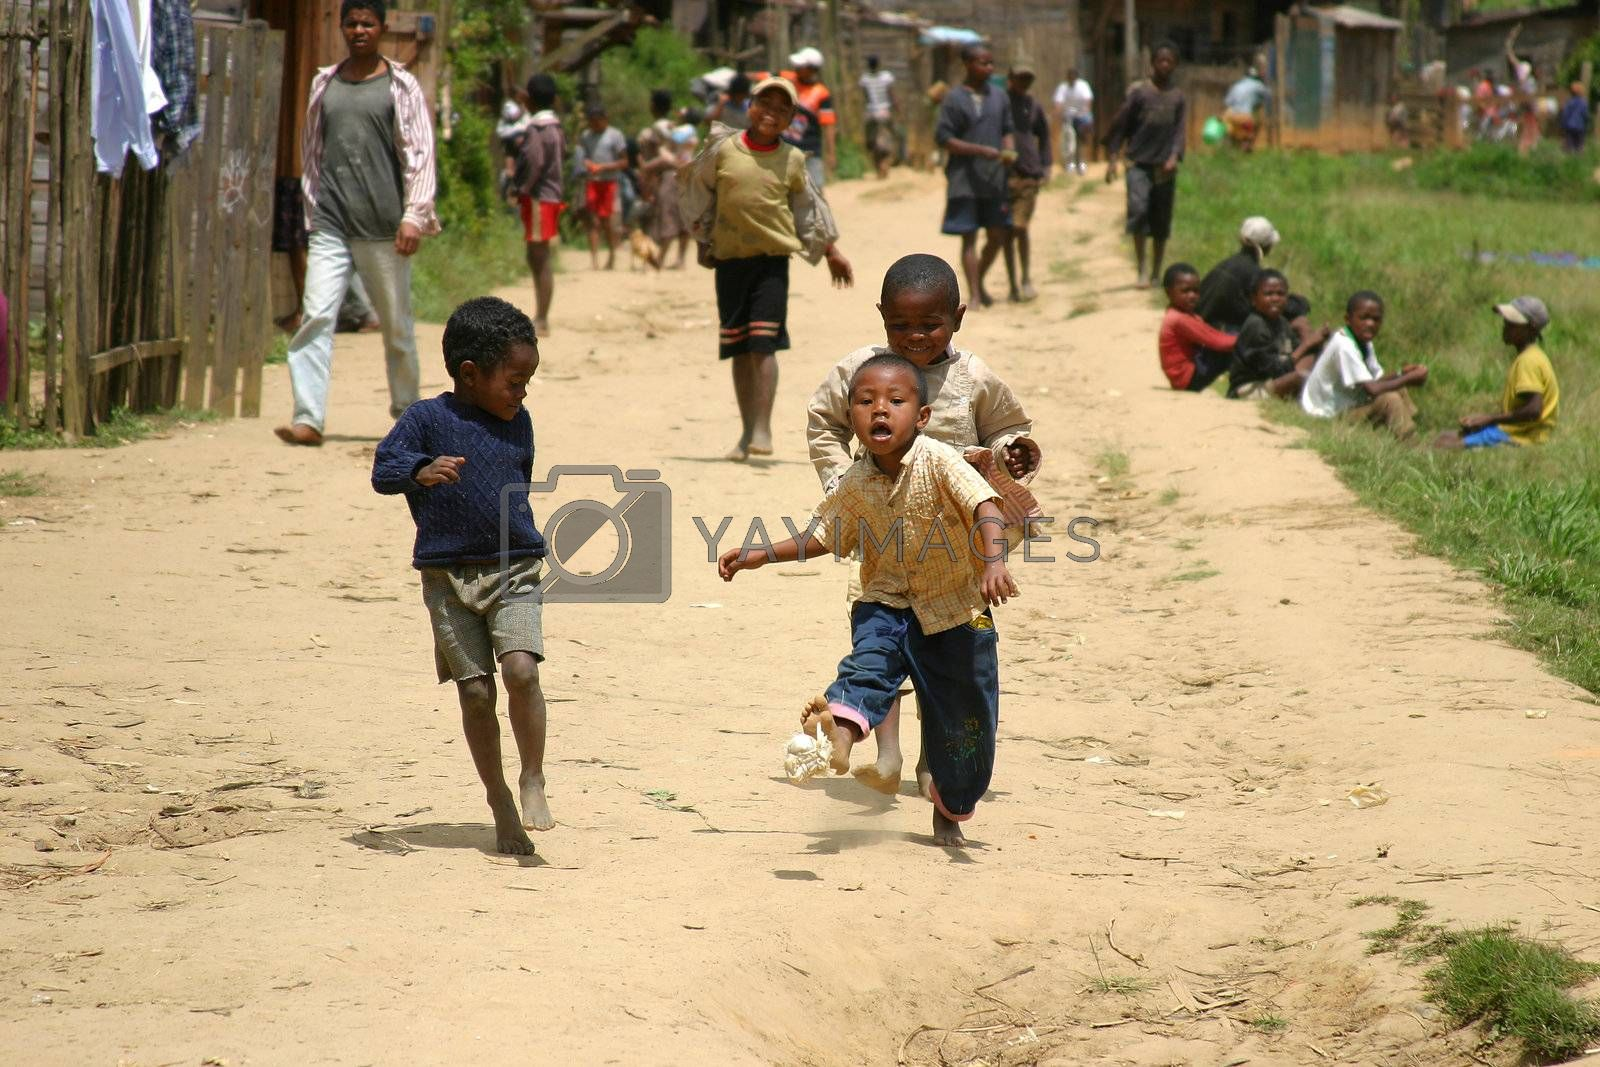 Kids in Madagascar playing with a home made ball